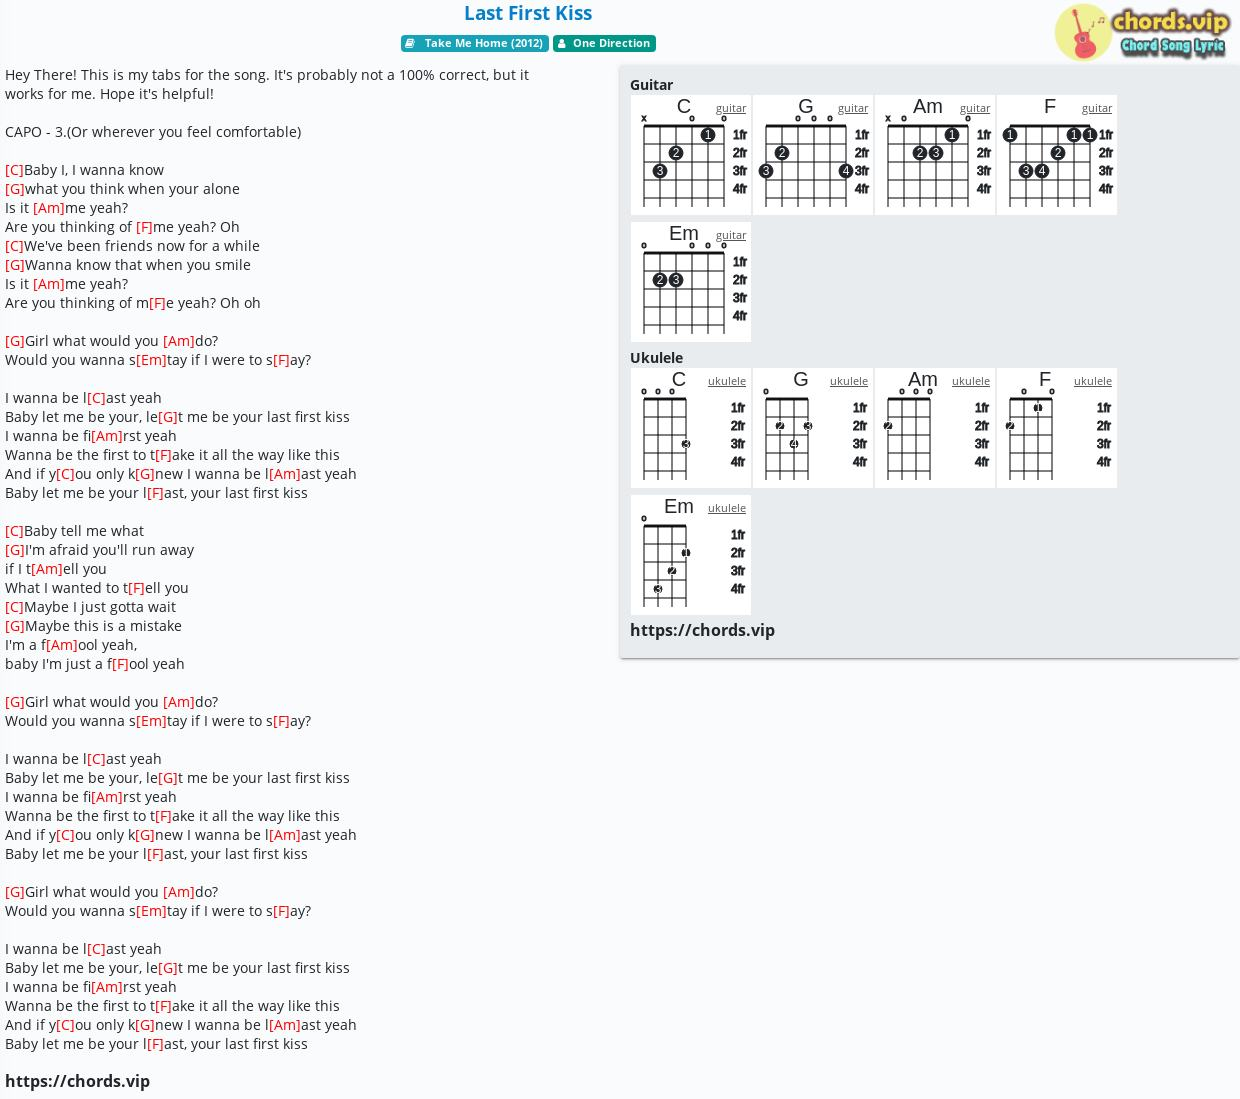 Chord Last First Kiss   One Direction   tab, song lyric, sheet ...